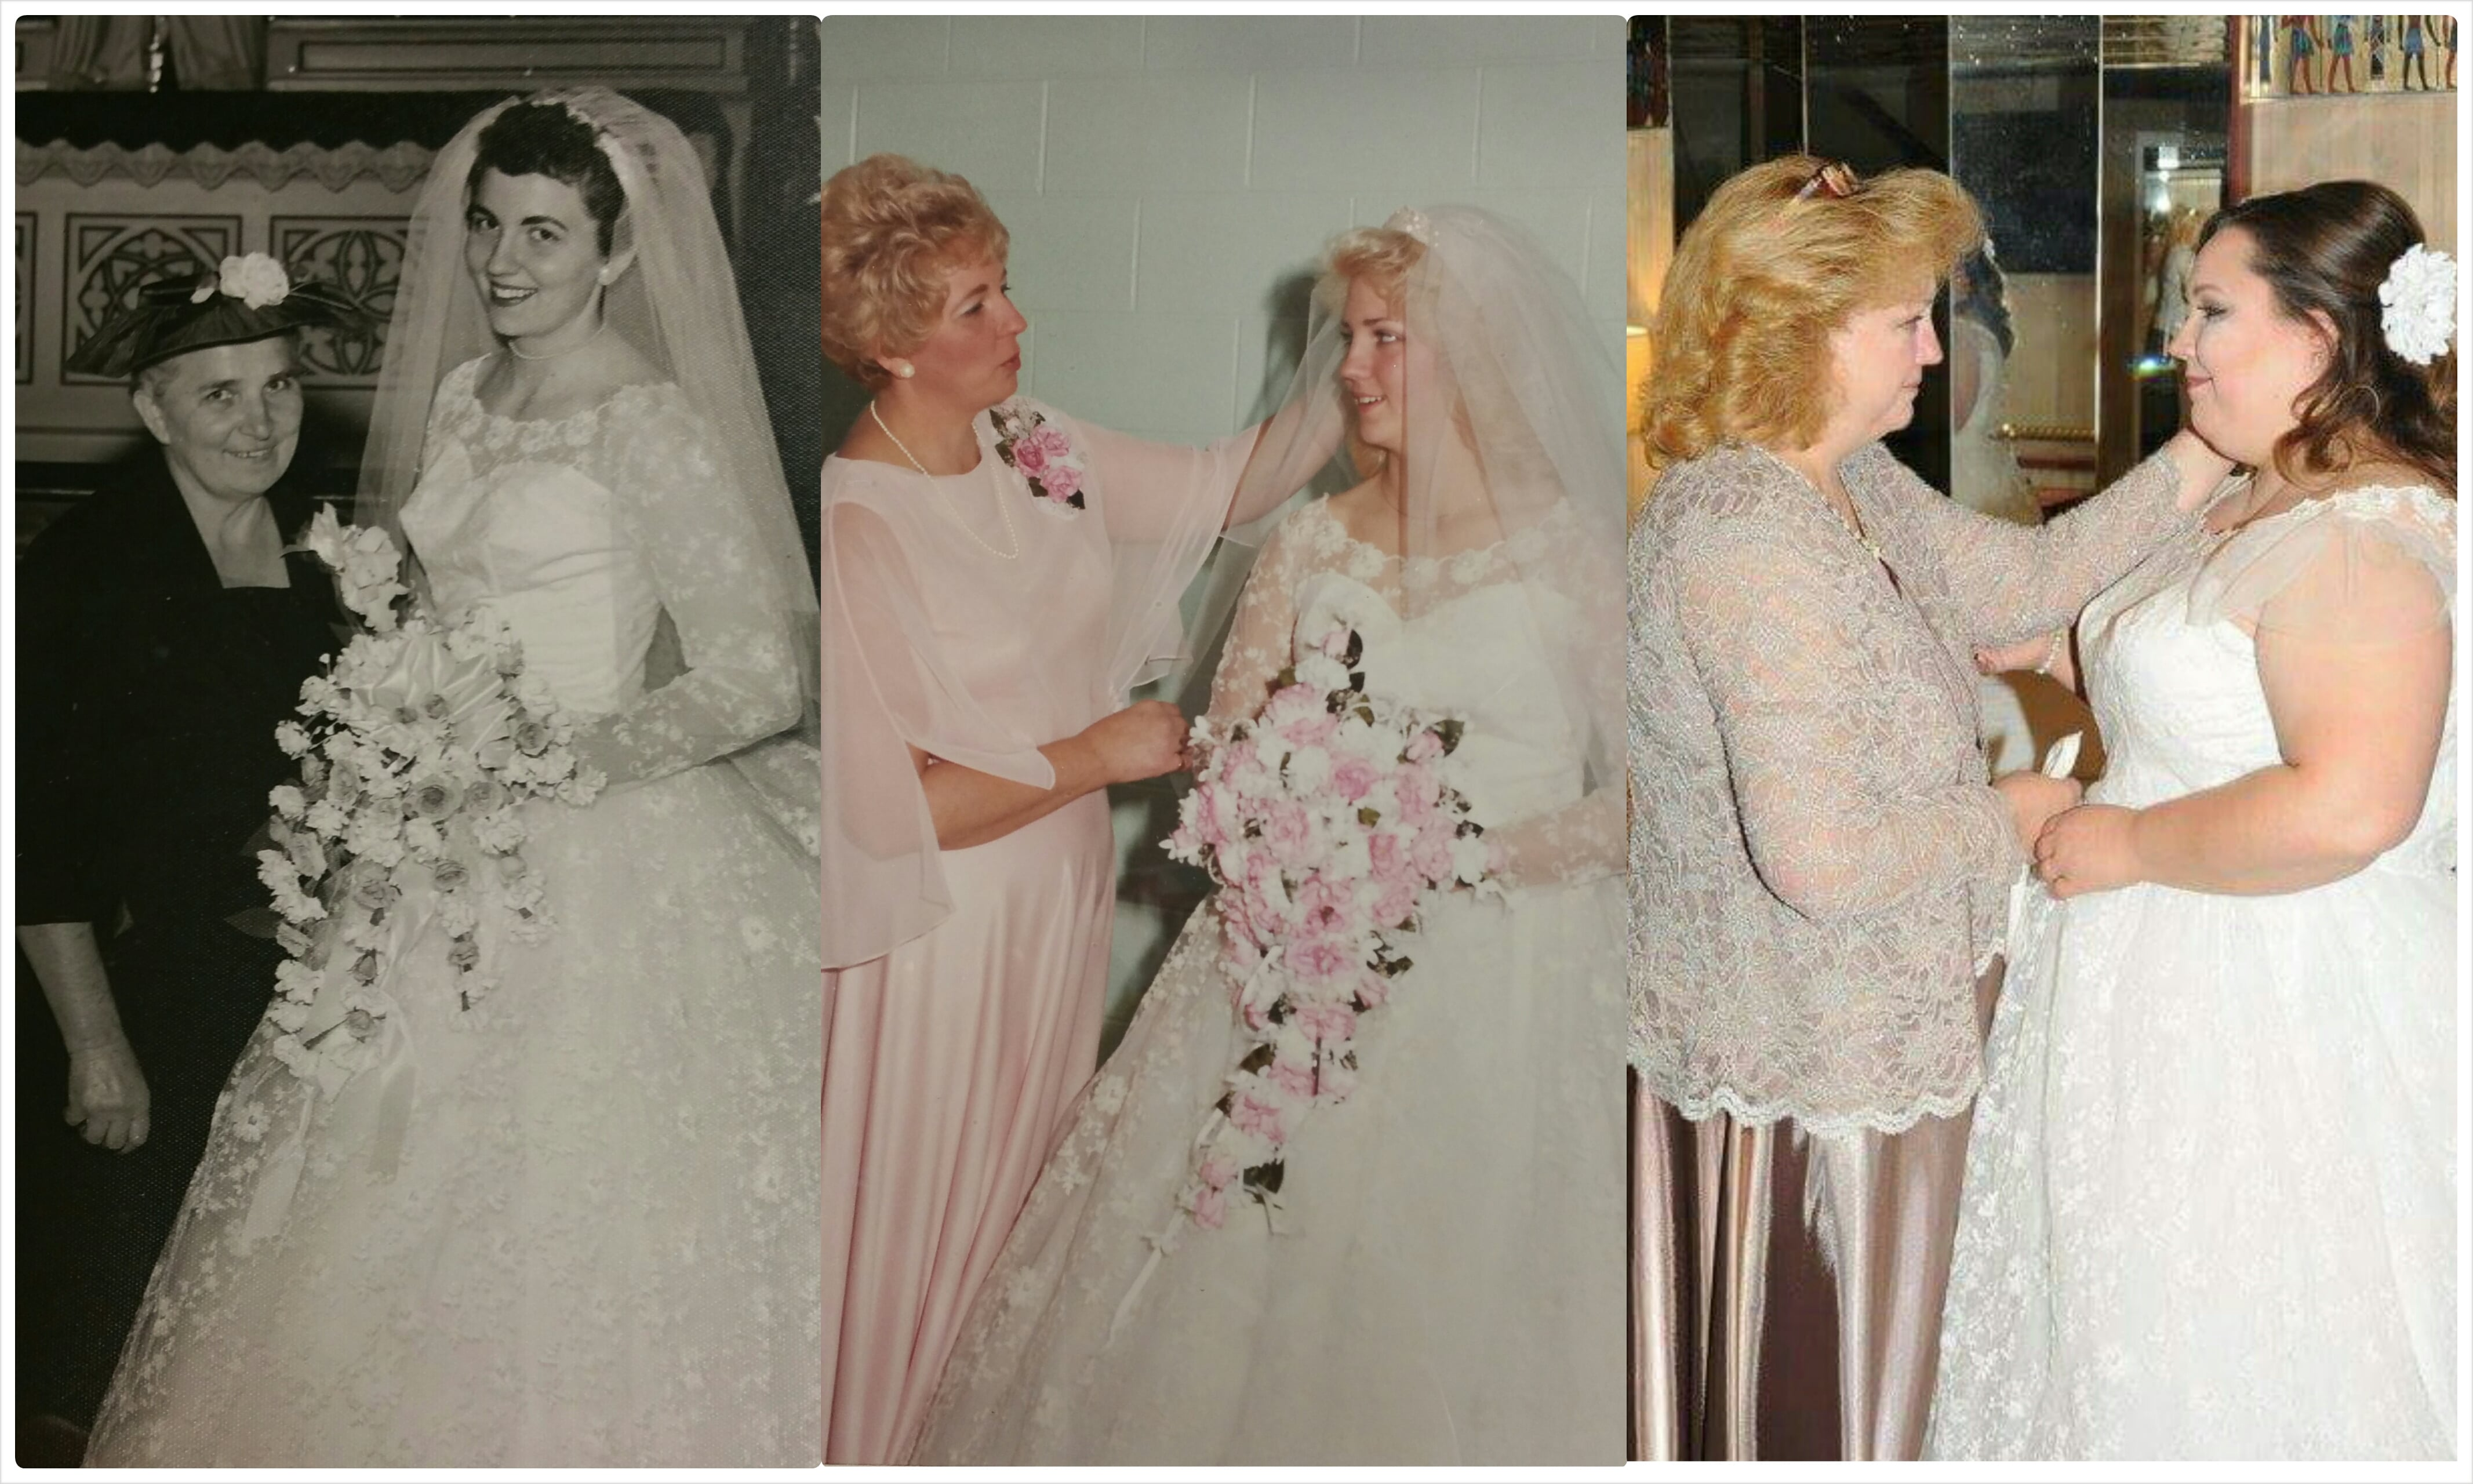 Kristen's Wedding Gown Restoration in Ohio